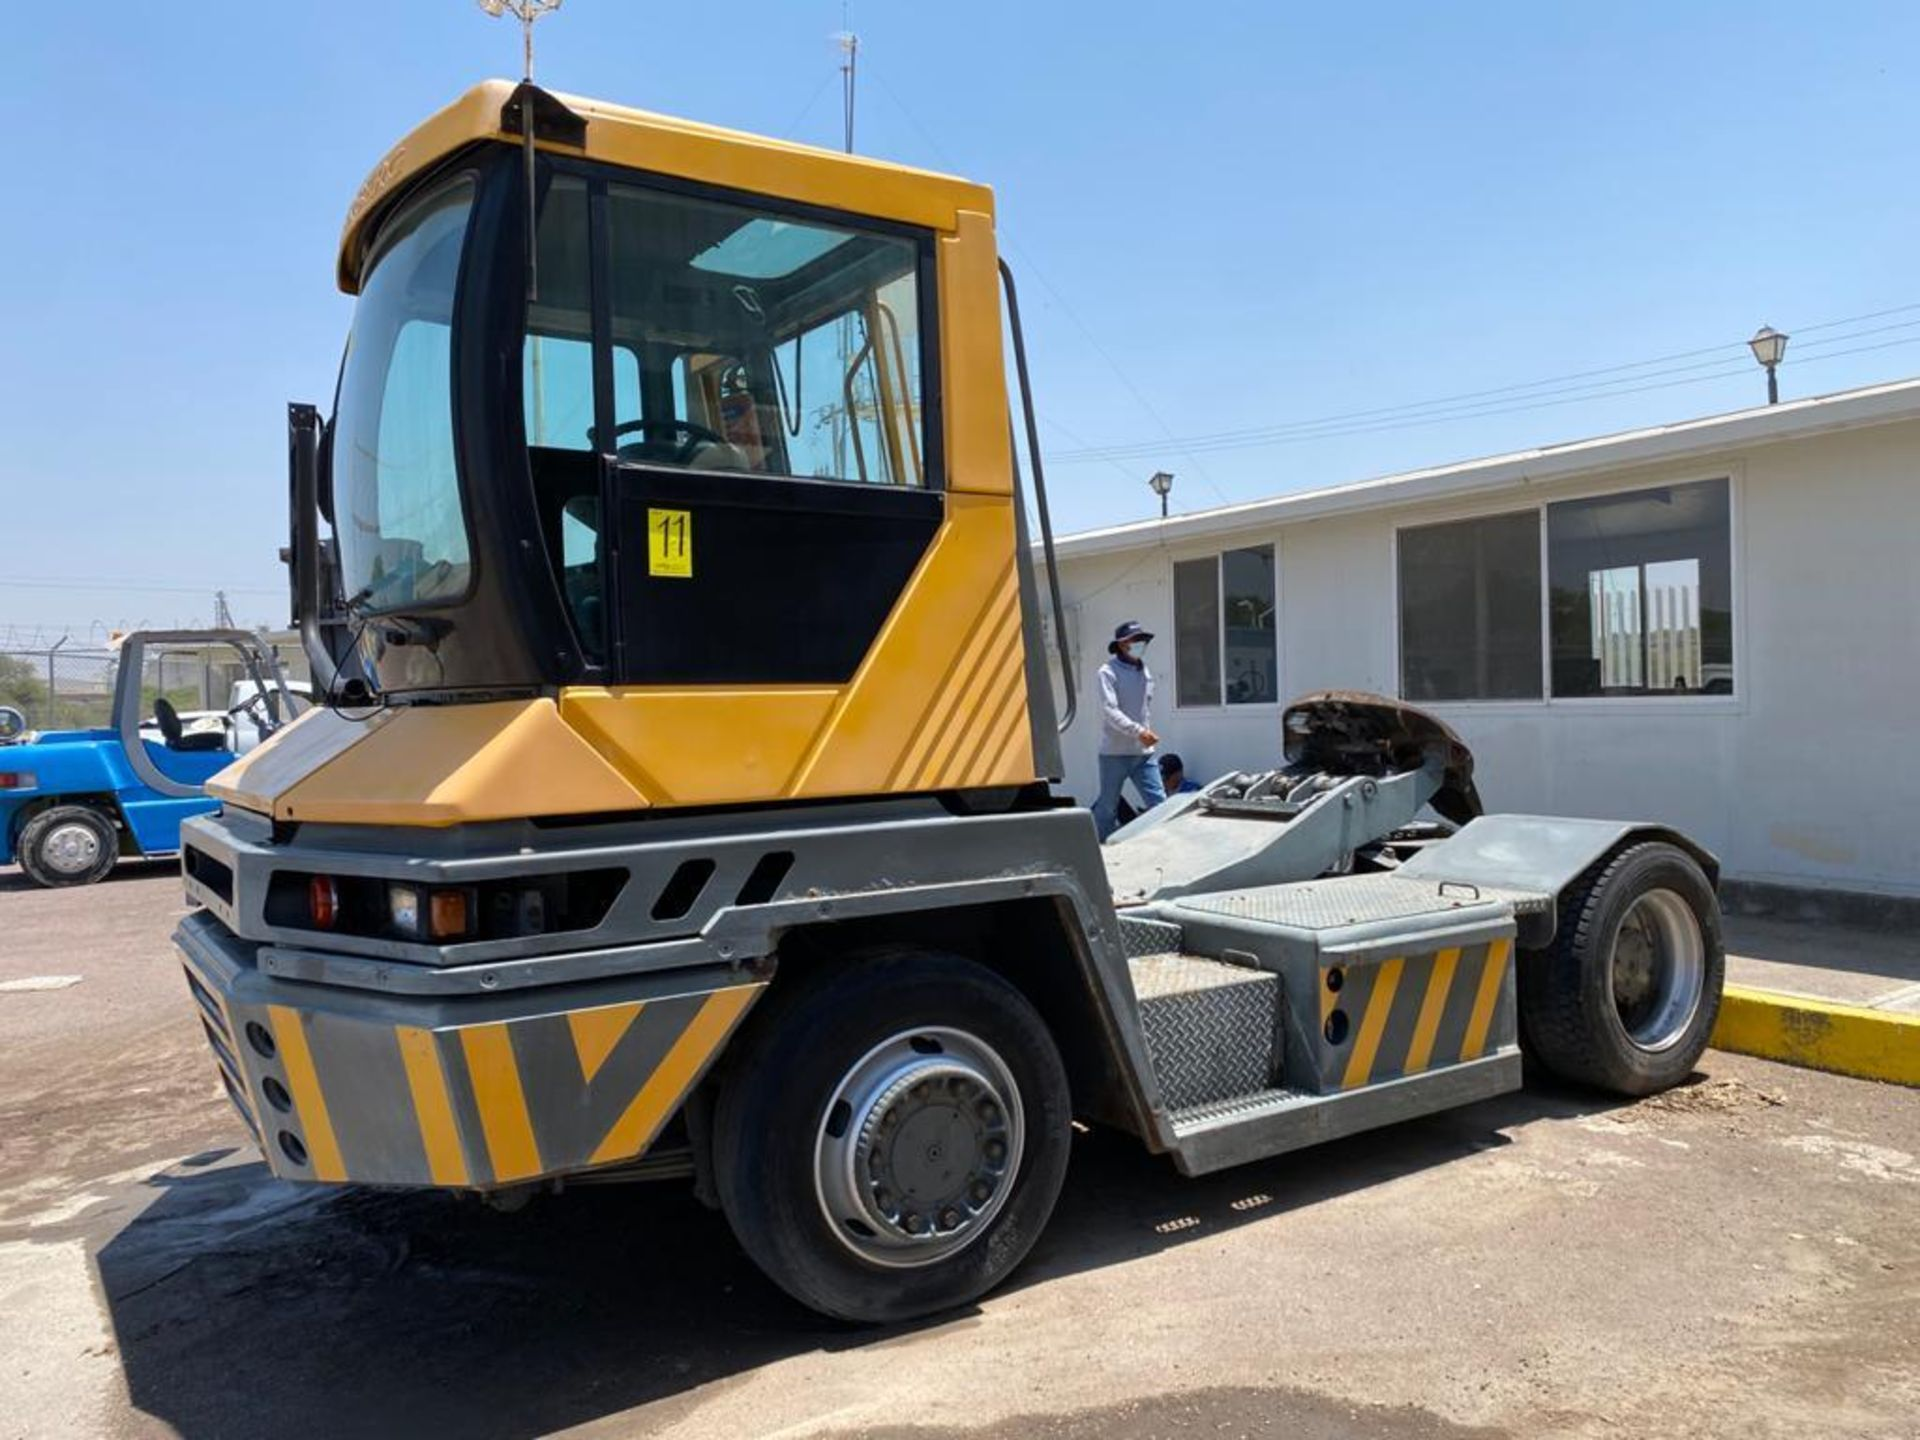 Terberg Capacity 2002 Terminal Tractor, automatic transmission - Image 8 of 57